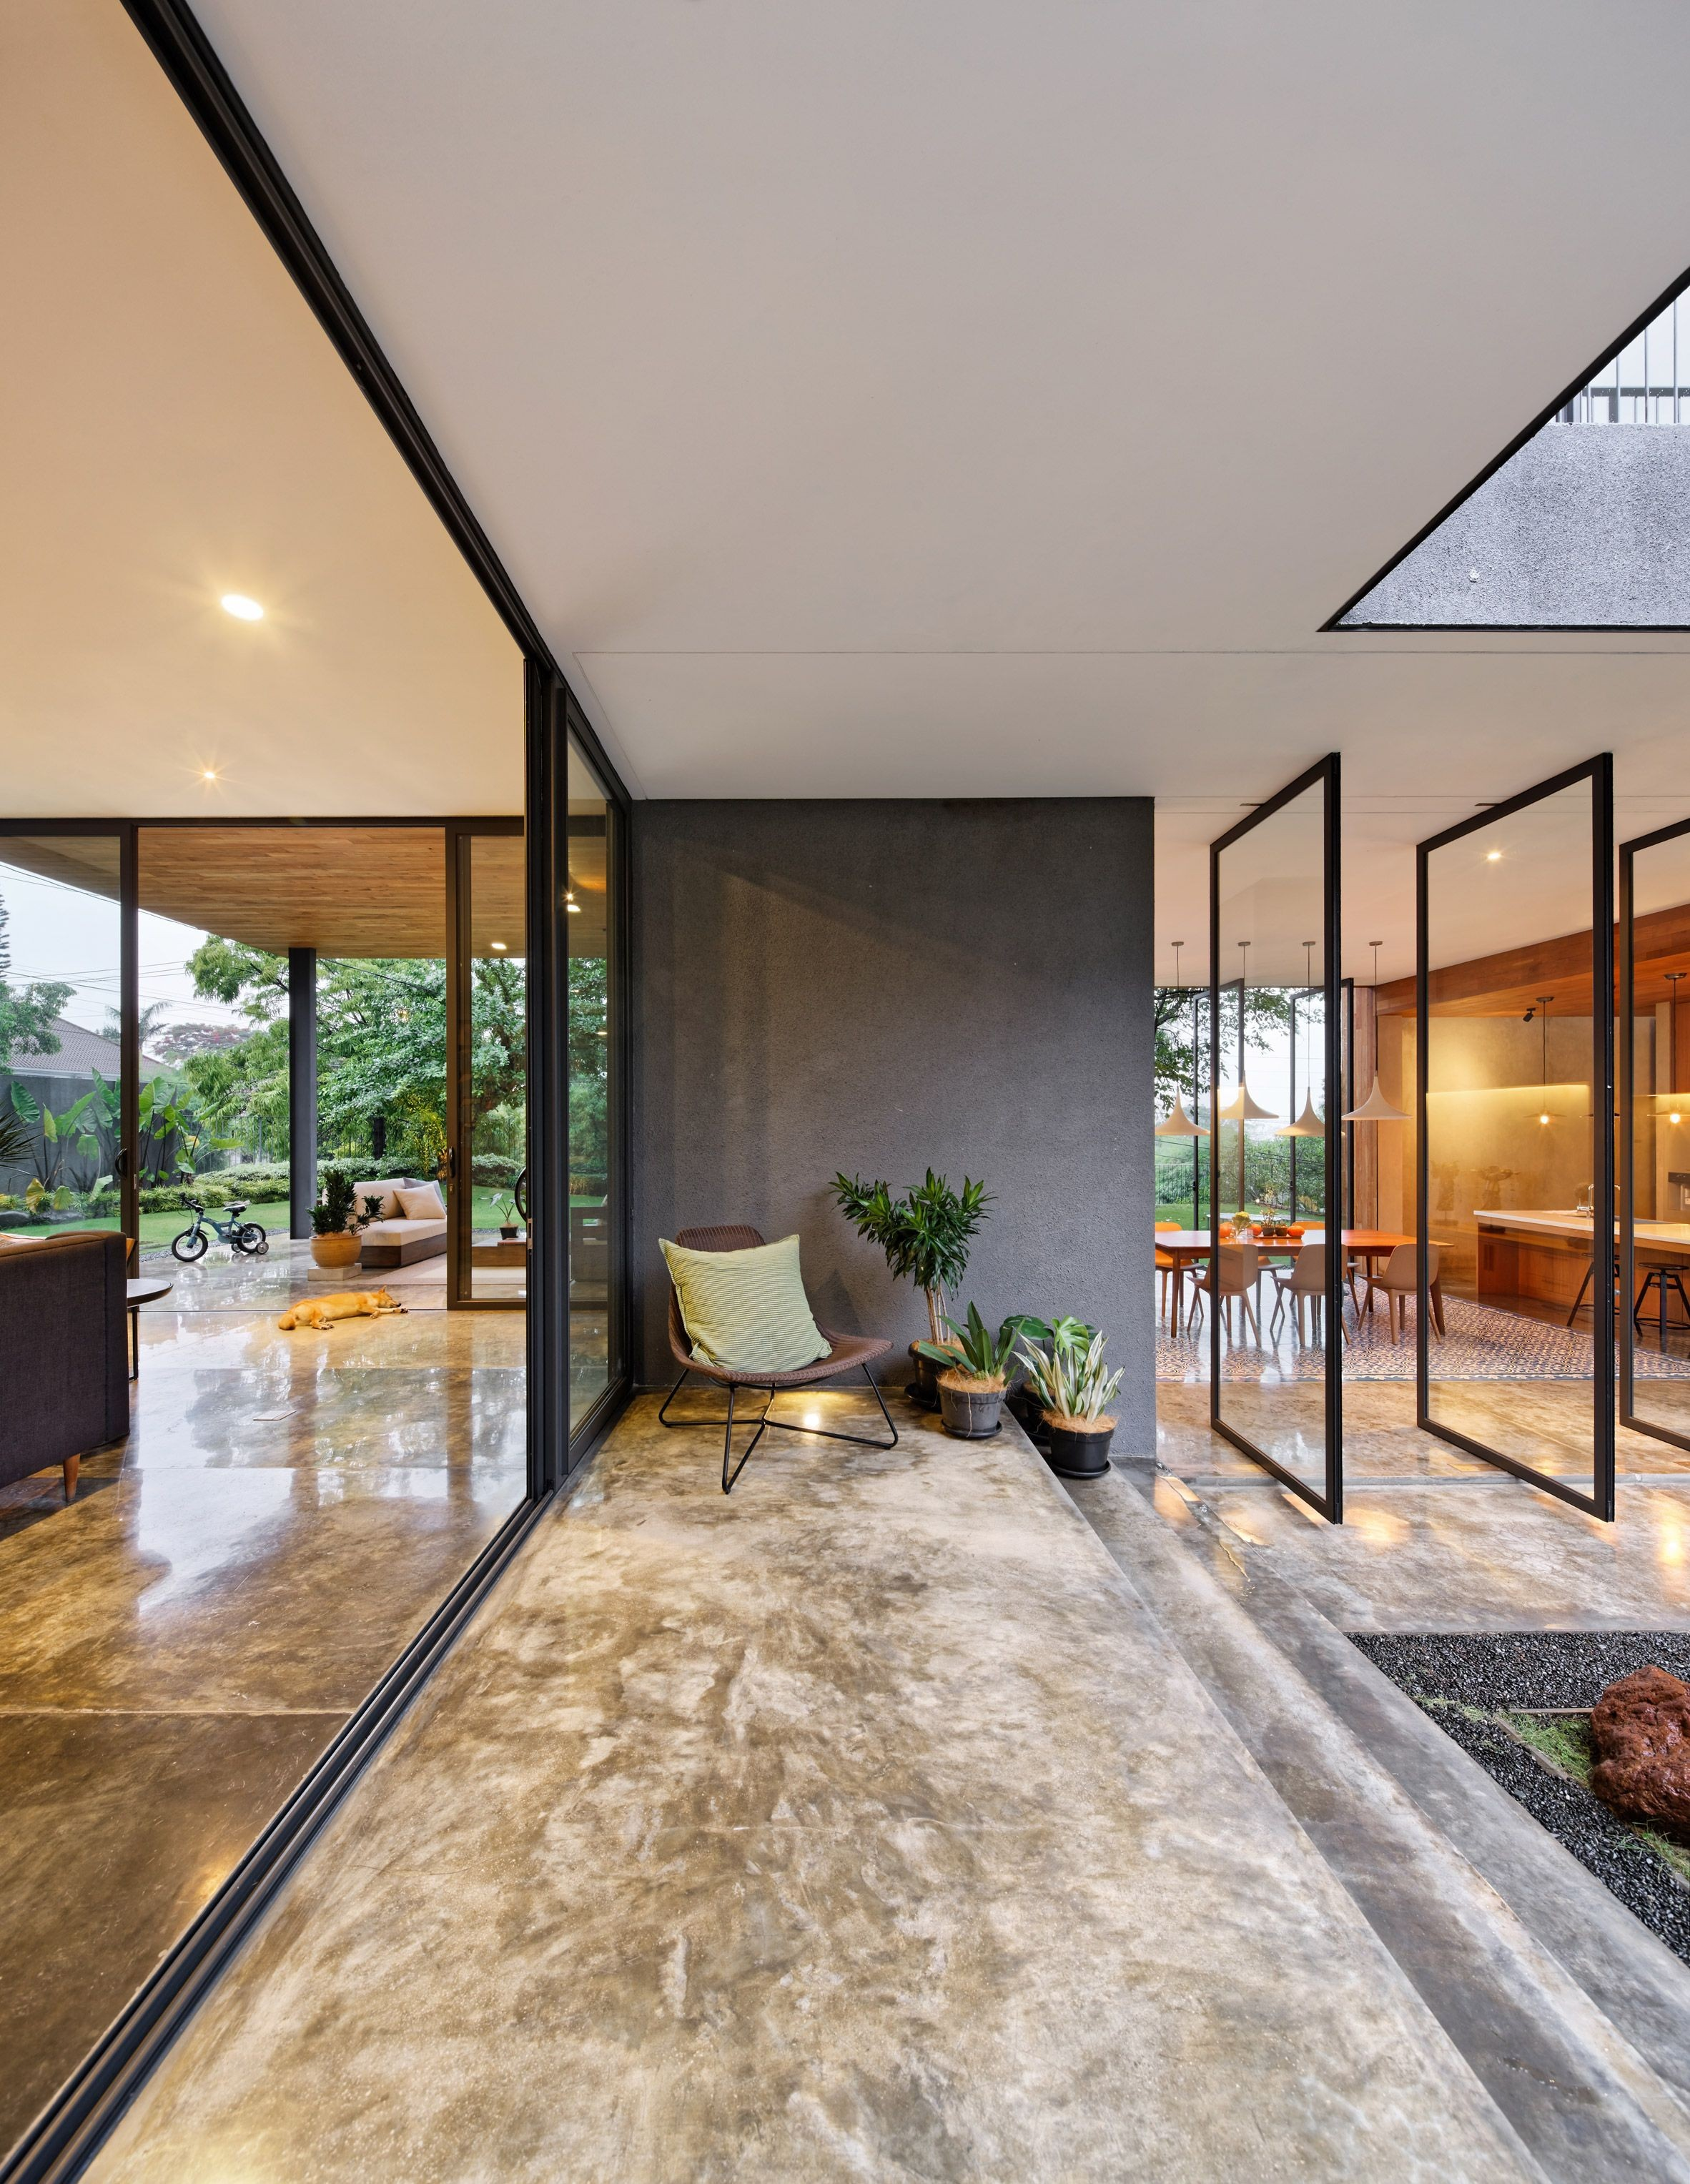 The entrance leads directly into a kitchen and dining area lined on both sides by glass doors that pivot open to allow air to waft through the space